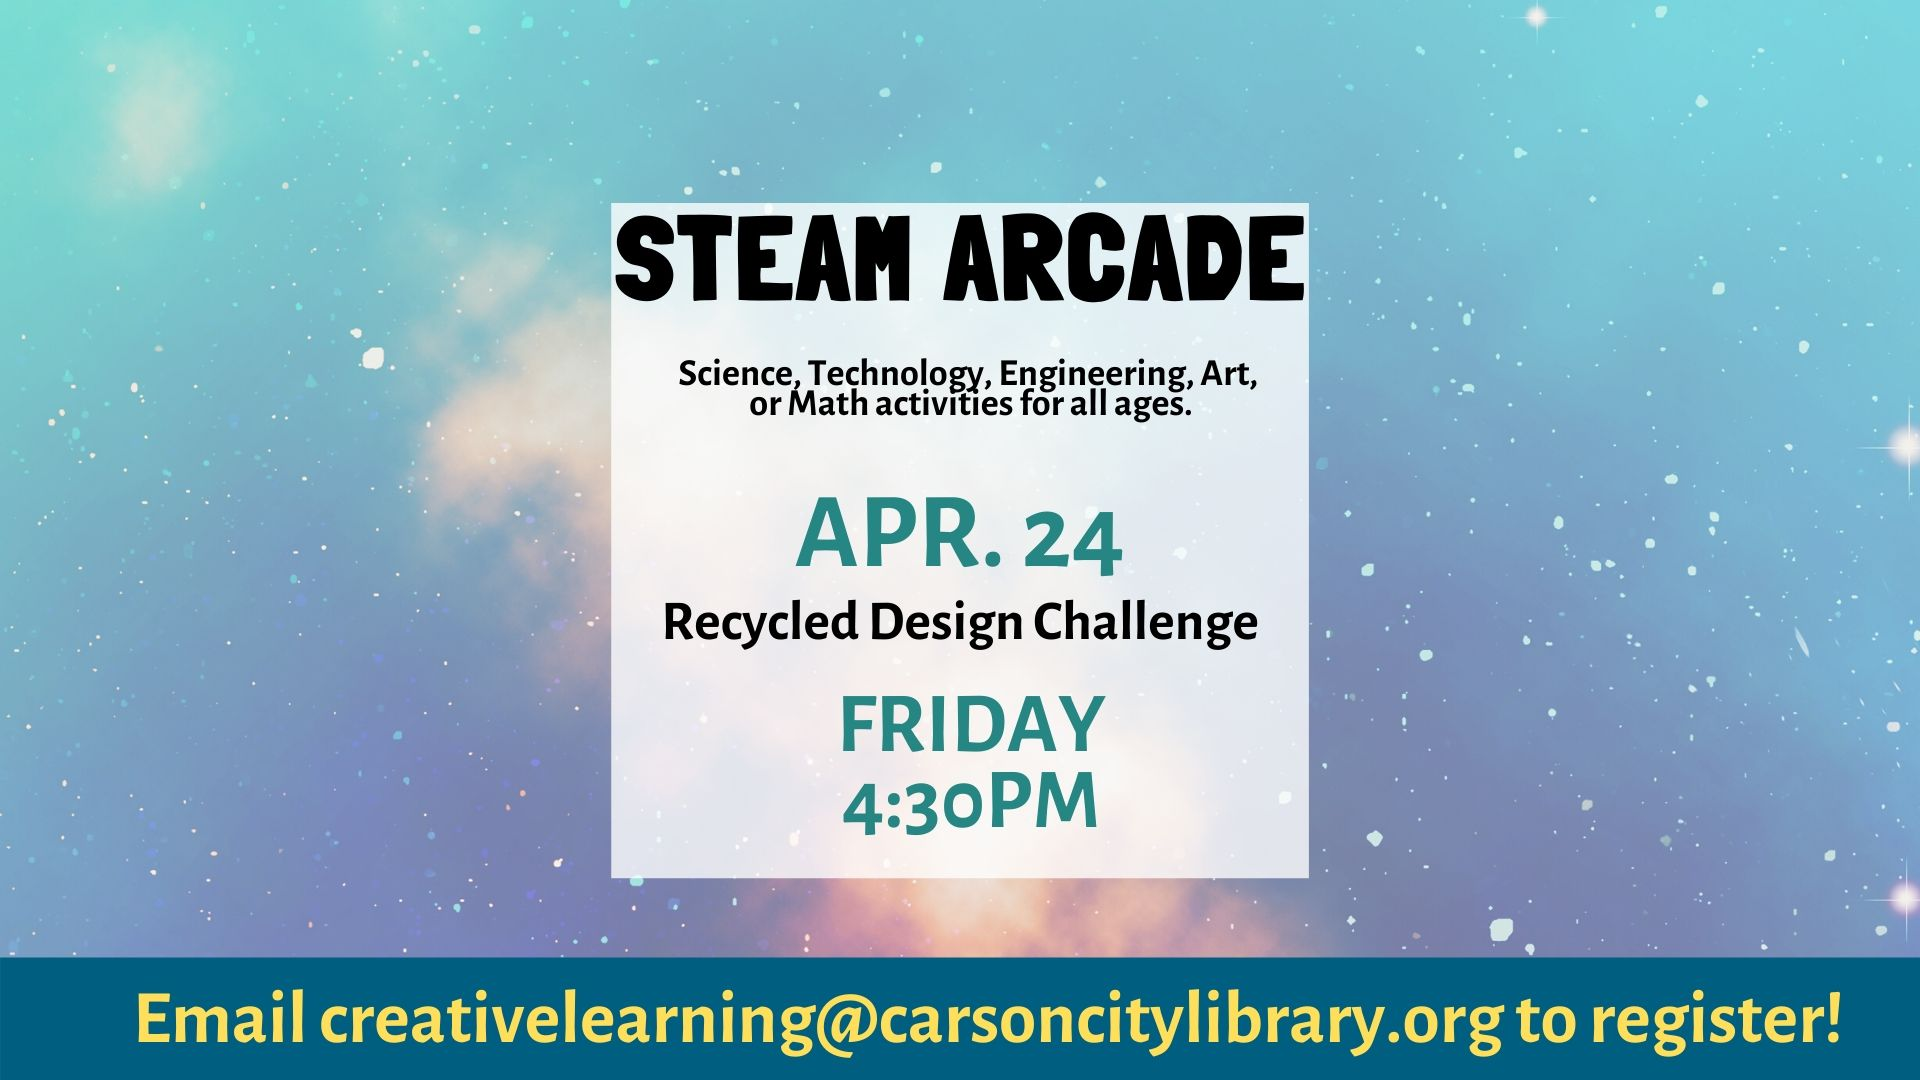 Virtual STEAM Arcade: Recycled Design Challenge